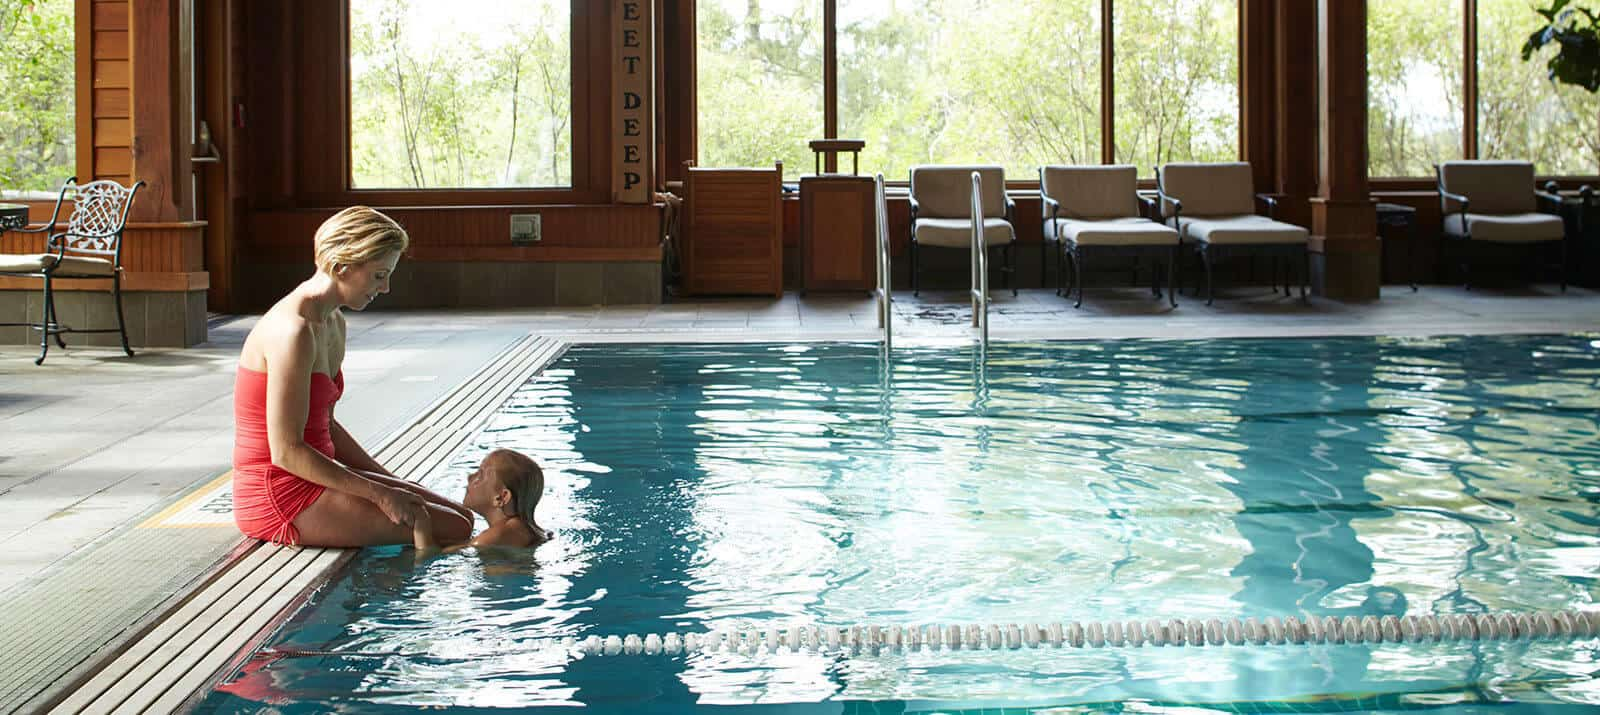 Pool and Spa at Mohonk Mountain House